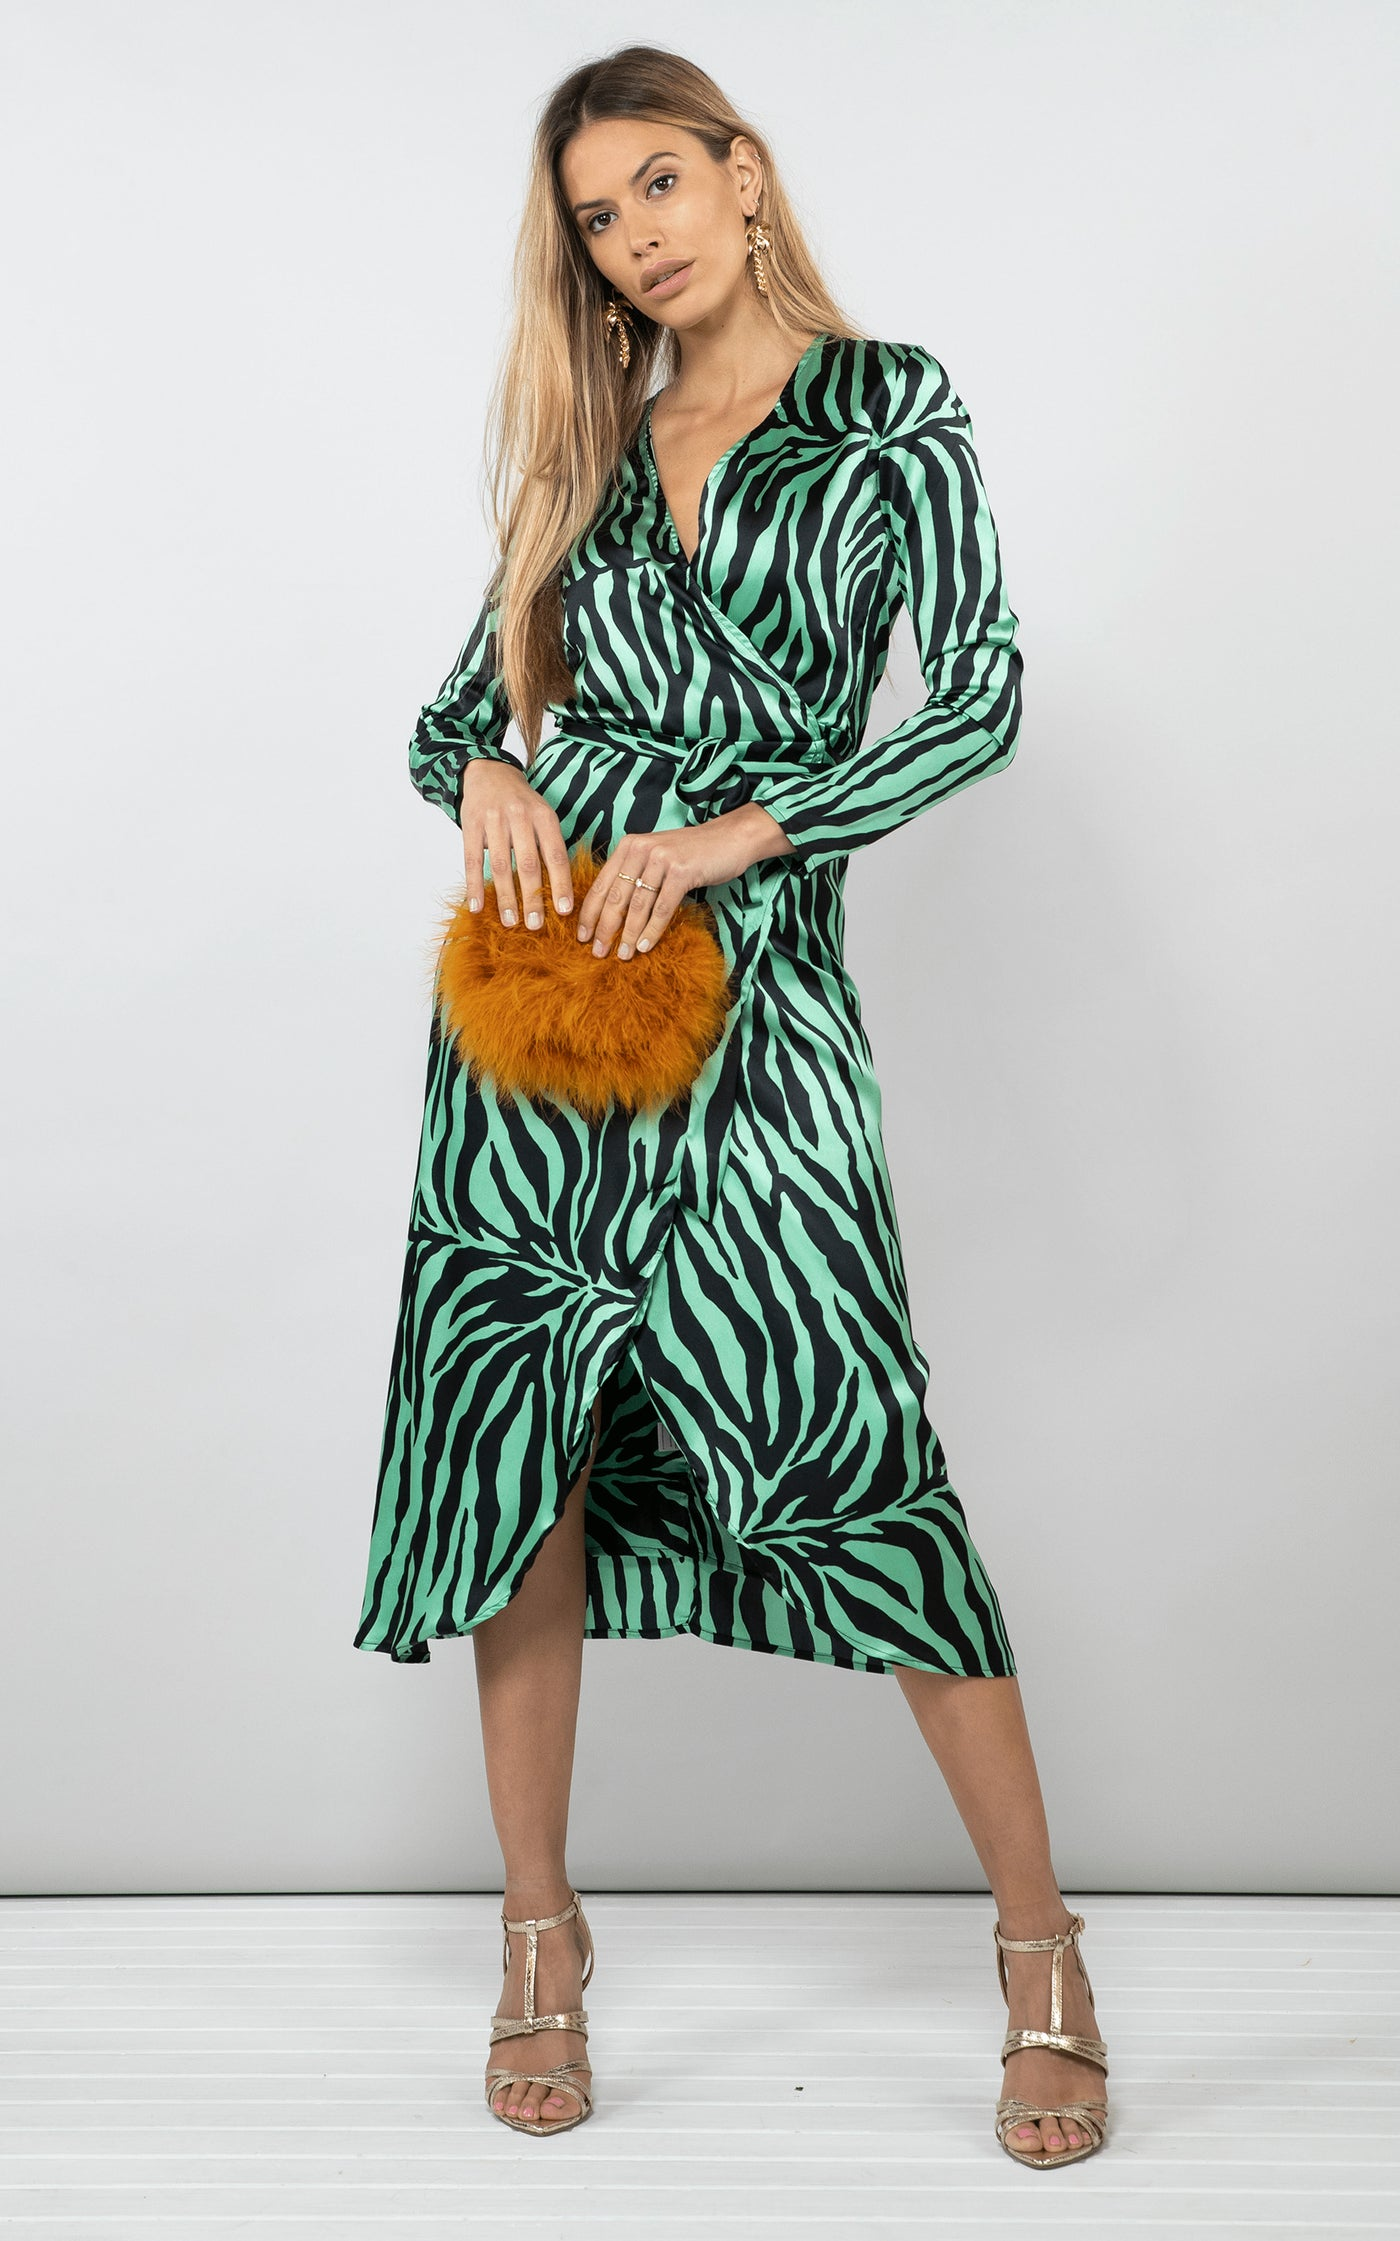 Dancing Leopard model faces forward holding handbag wearing Yondal Dress in green zebra print